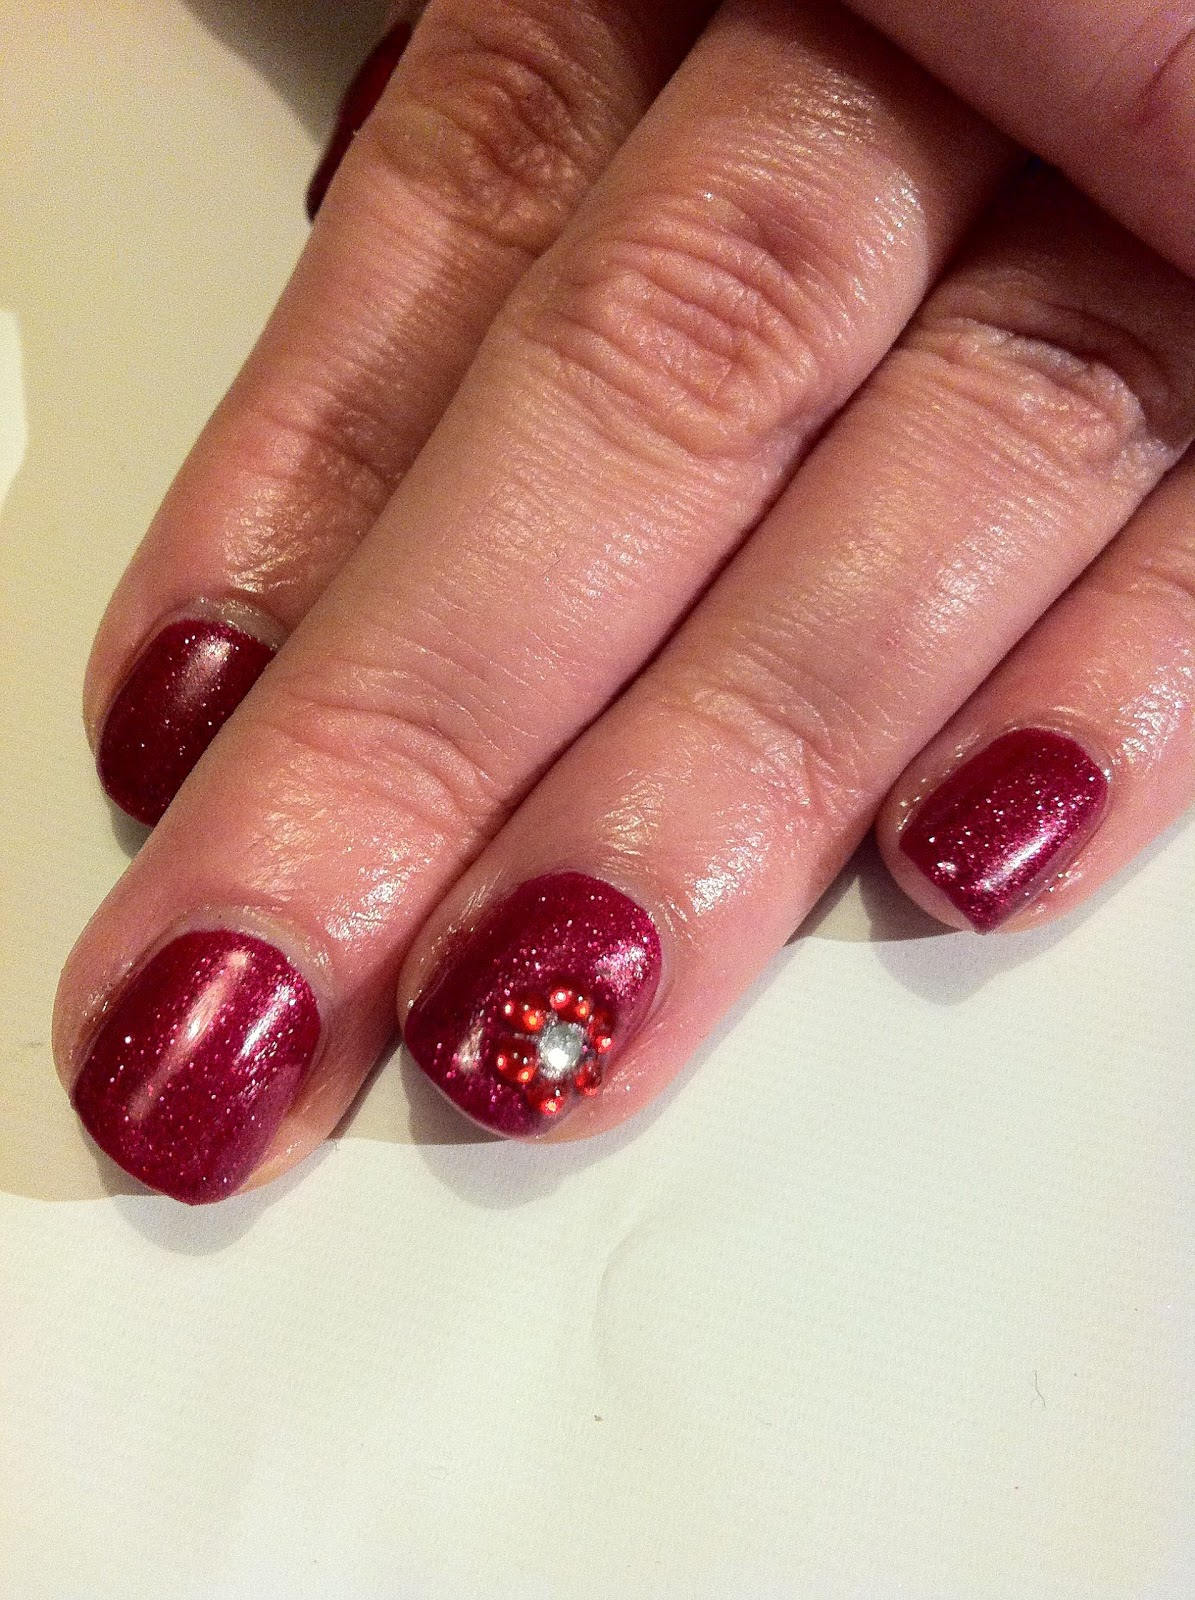 Red Shellac Nail Design: Best ideas about red shellac nails on ...